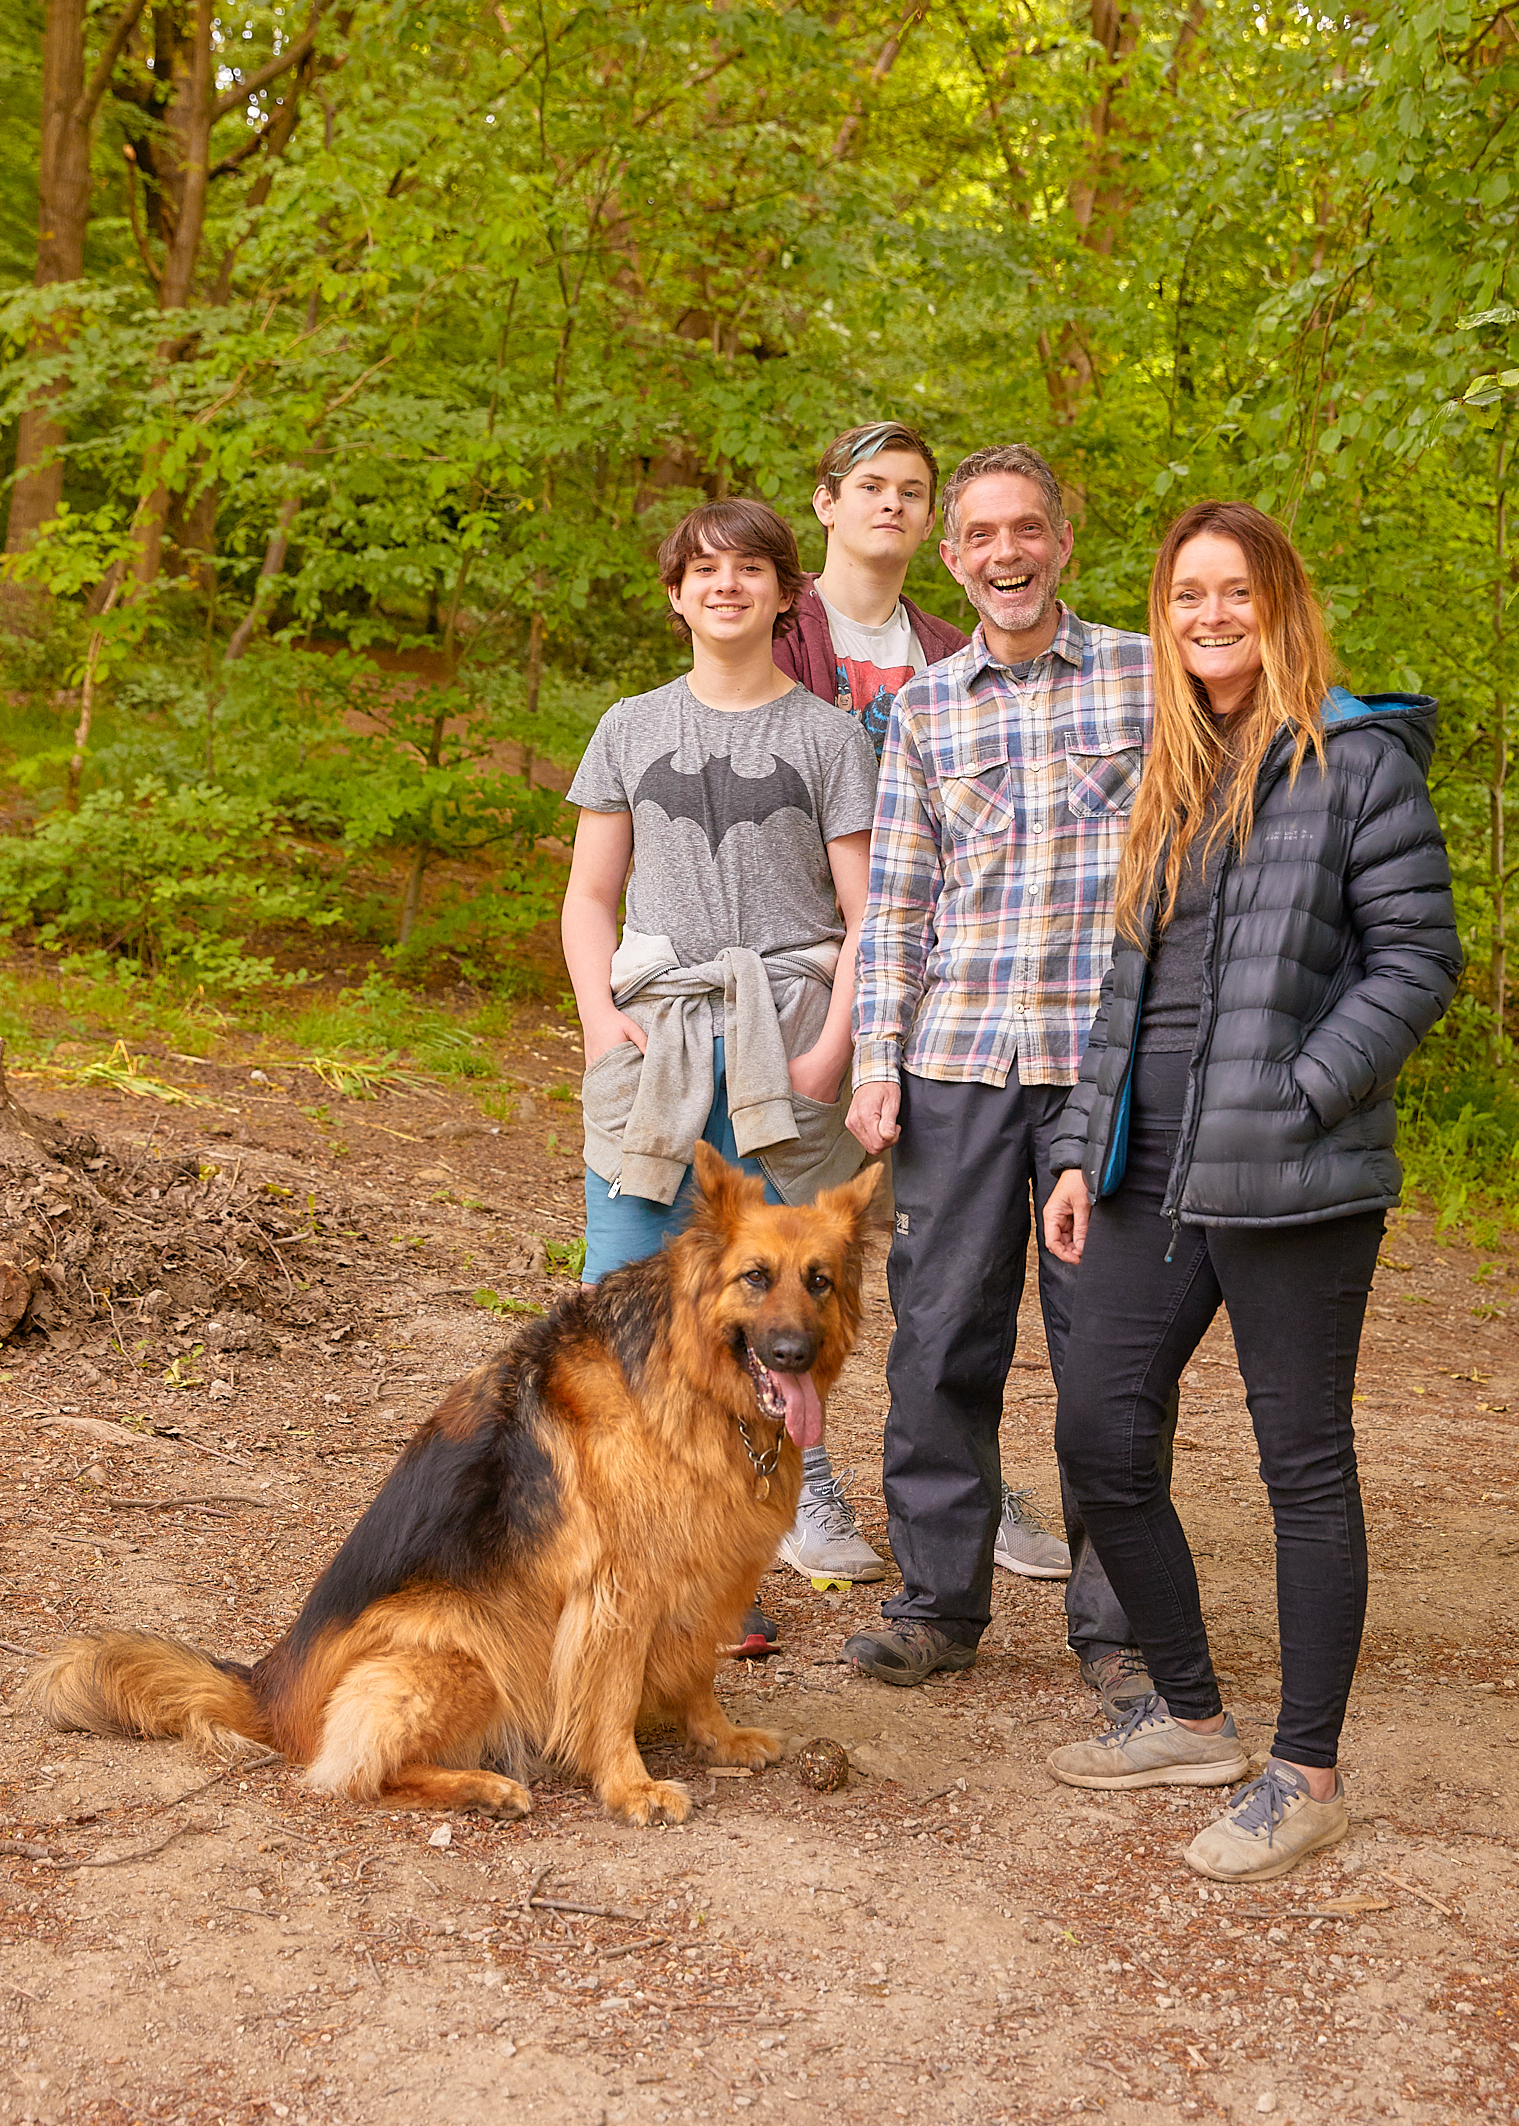 Above: Wendy and Steve Jones-Blackett with their children and Whisky, one of their two dogs.